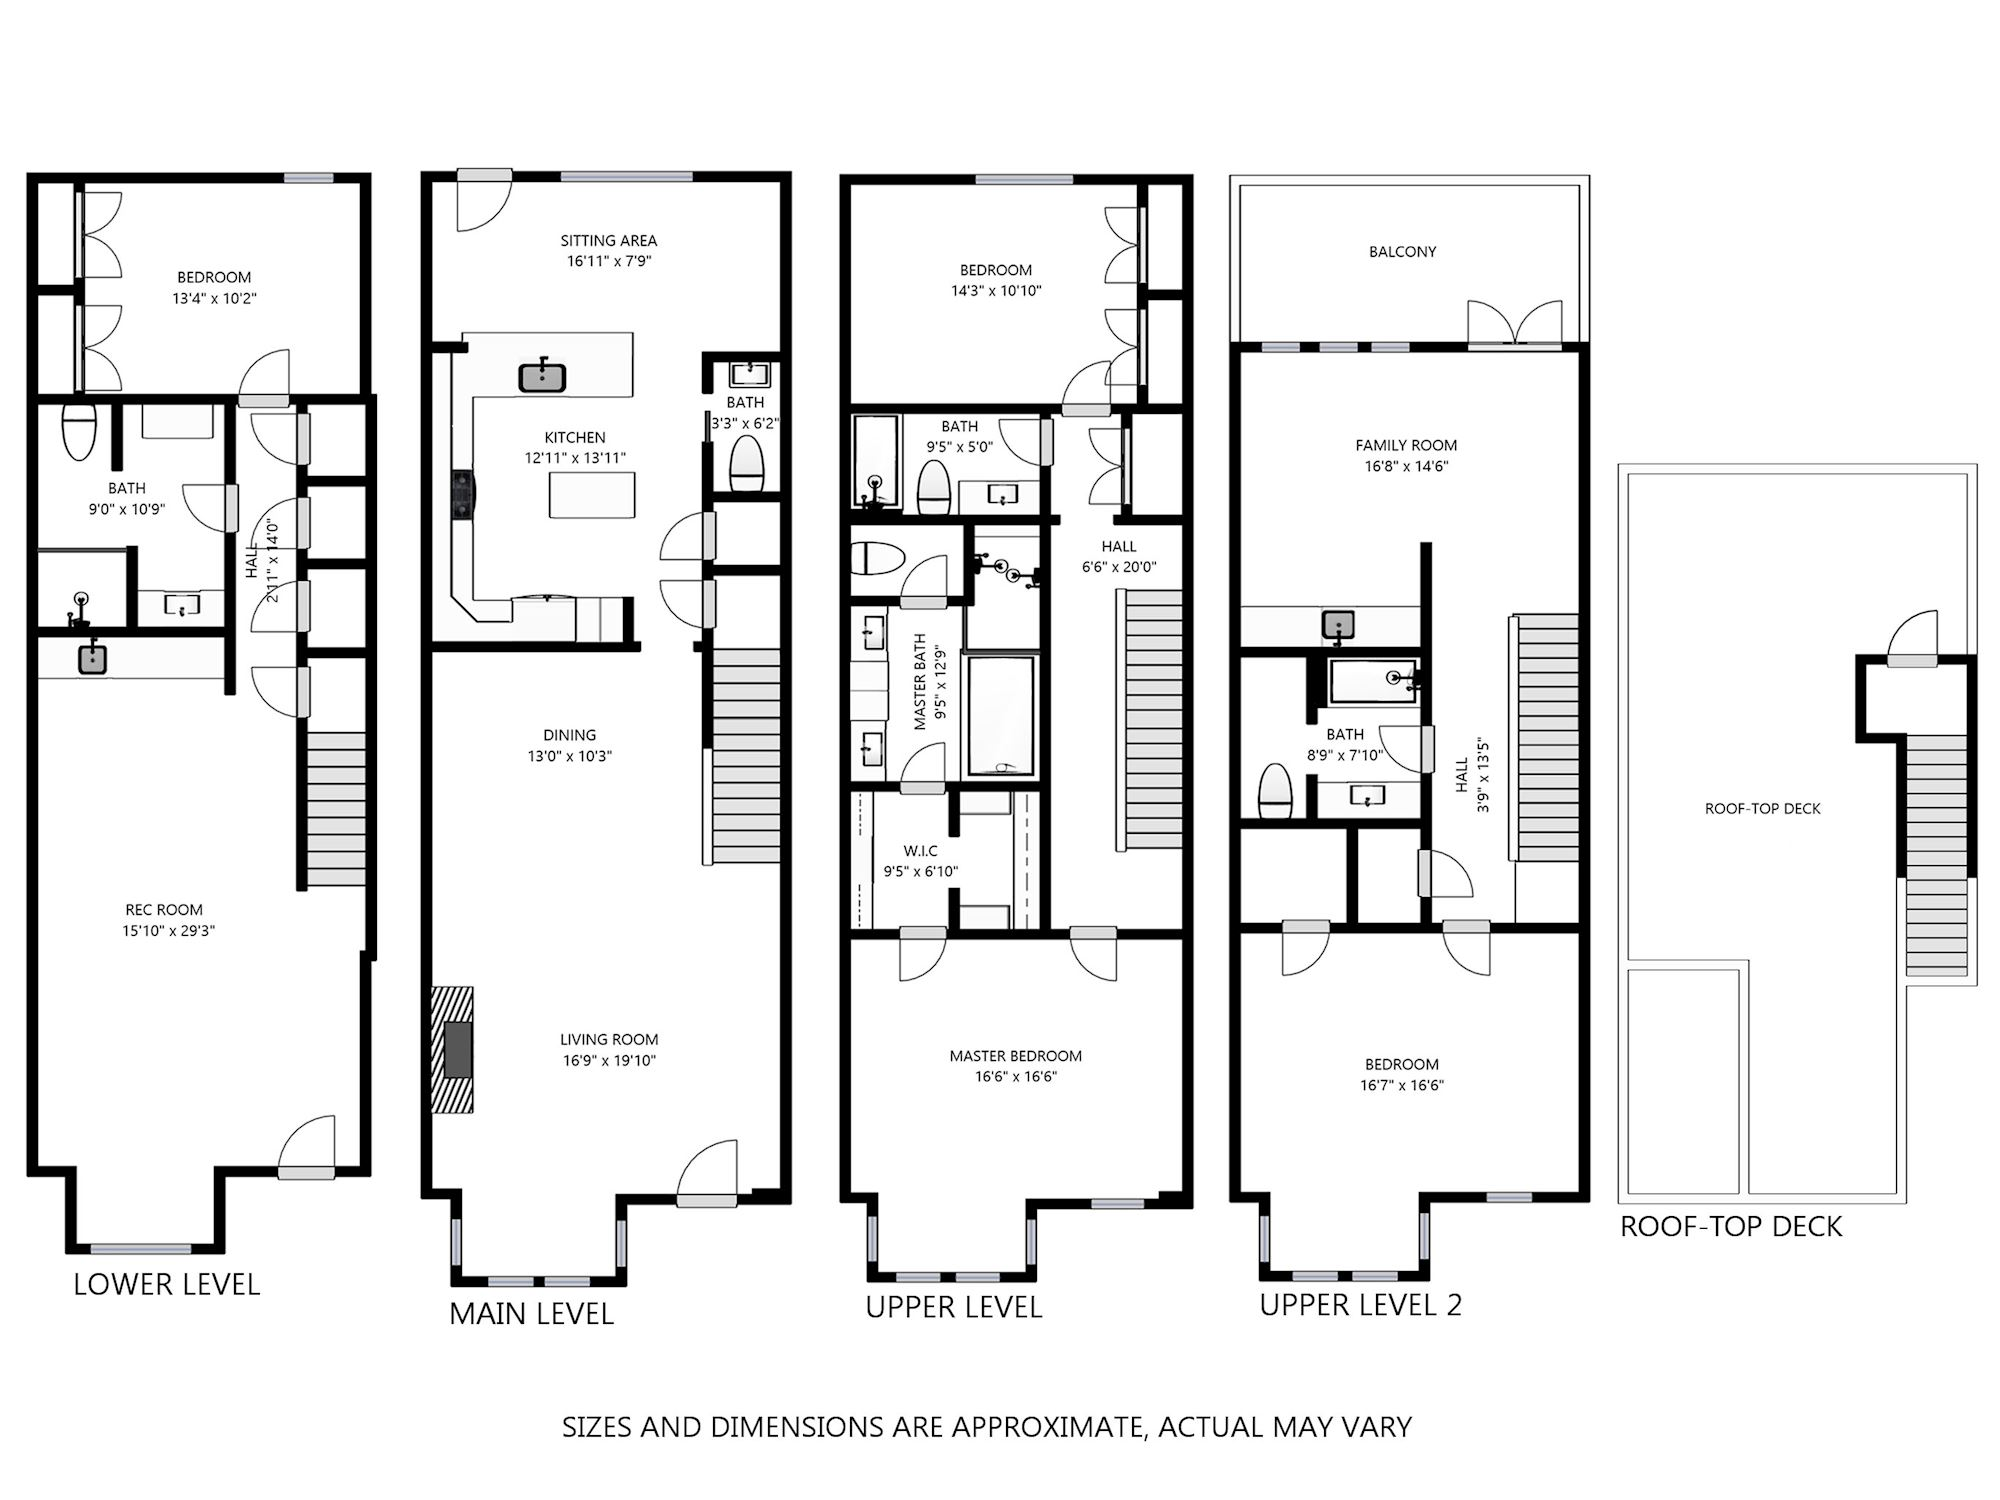 Floorplan provides an approximate representation and is deemed reliable, but exact measurements and features are not guaranteed. Any measurements or features material to the buyer should be confirmed by a field measure.